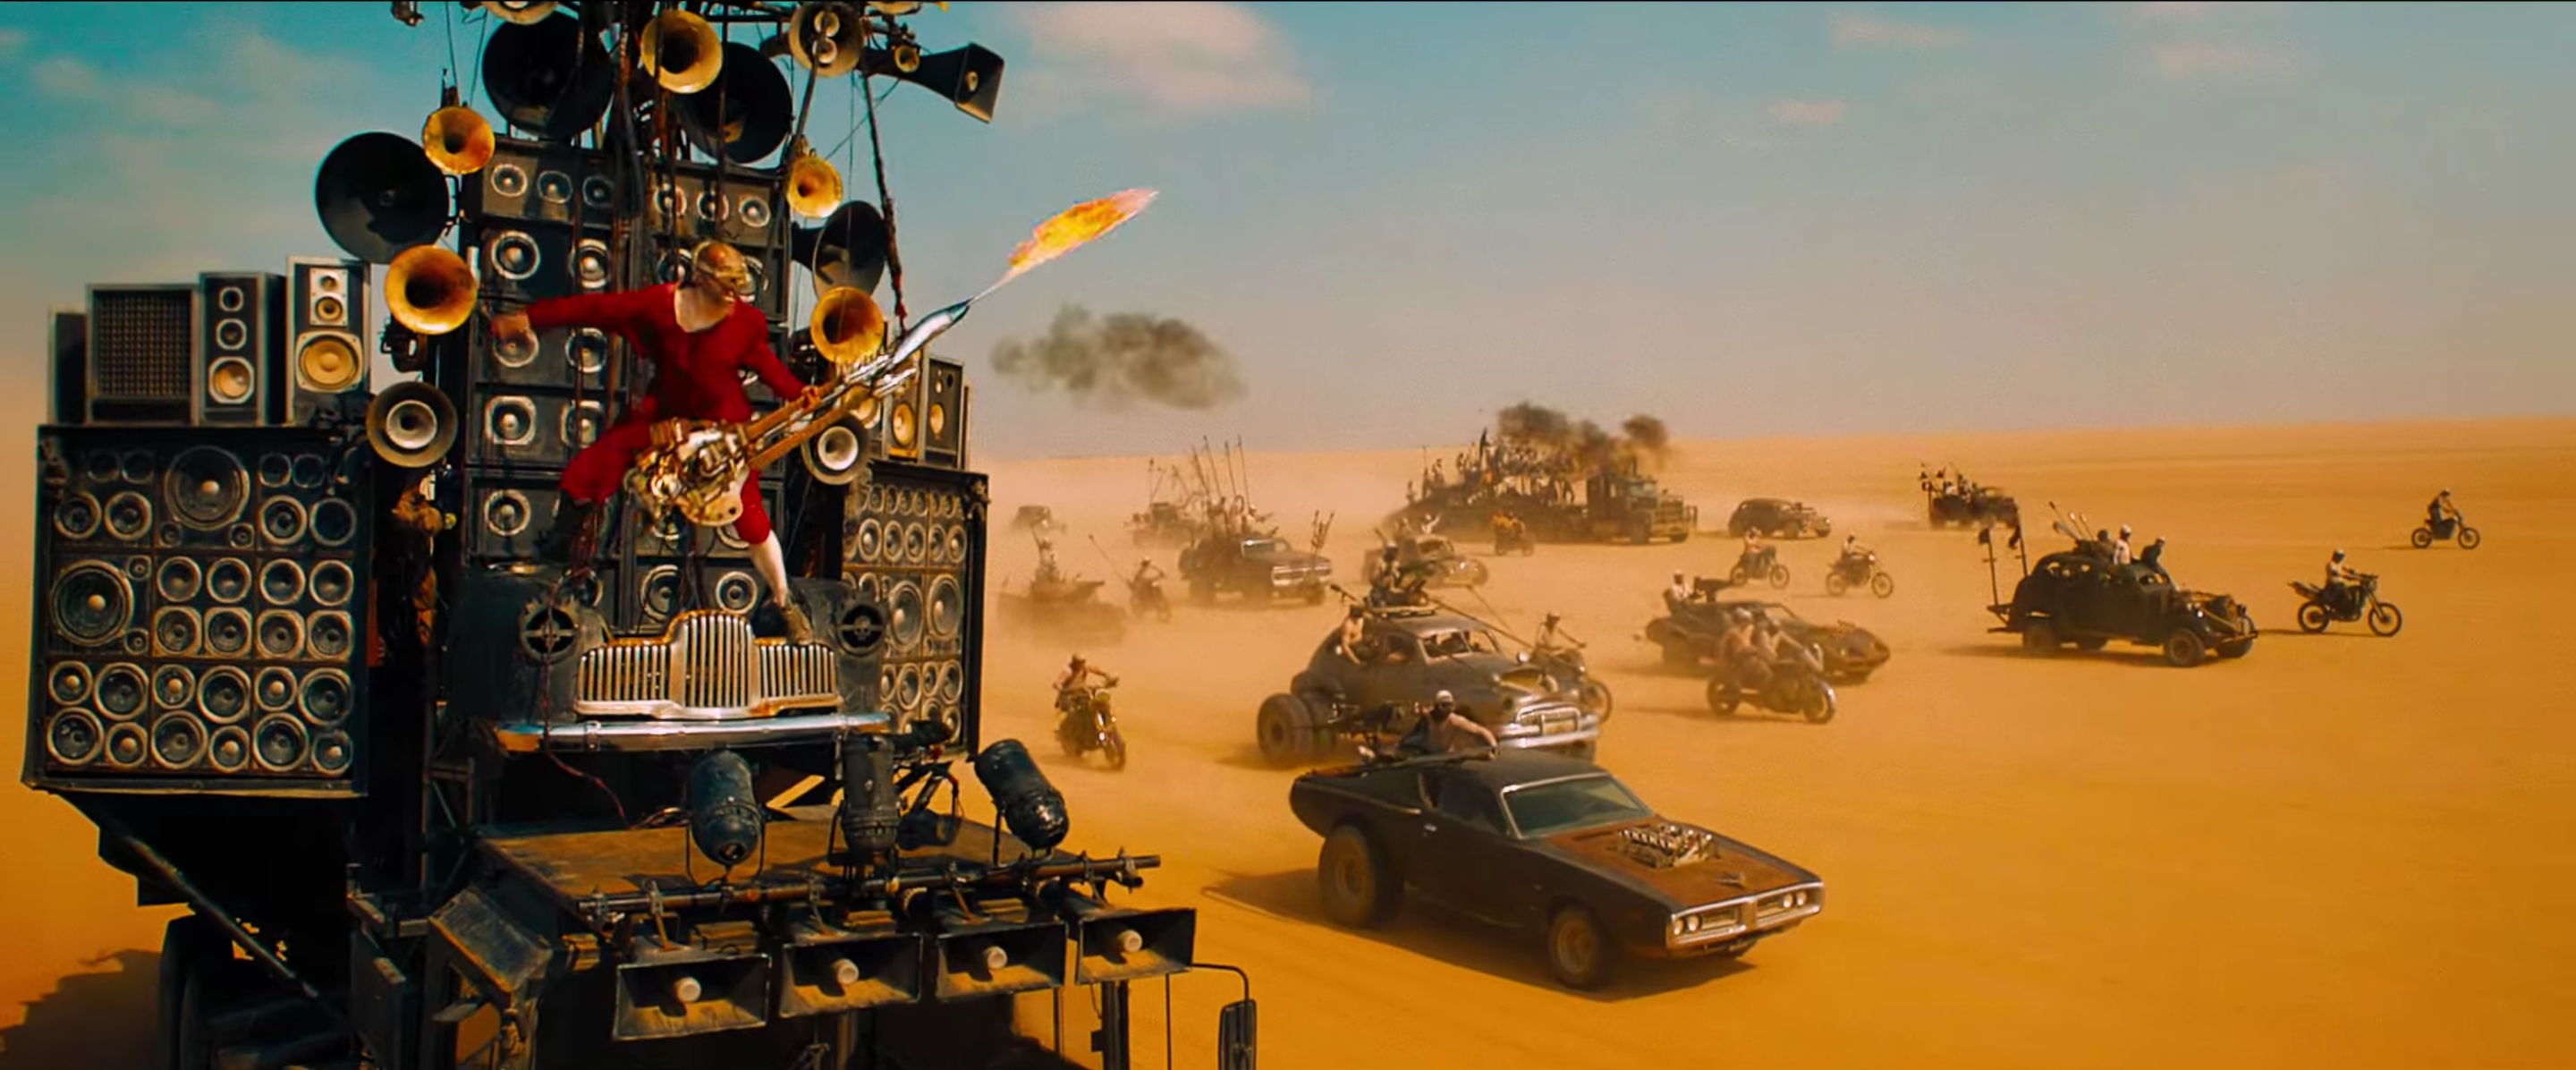 mad-max-fury-lists-oscars-special-effects